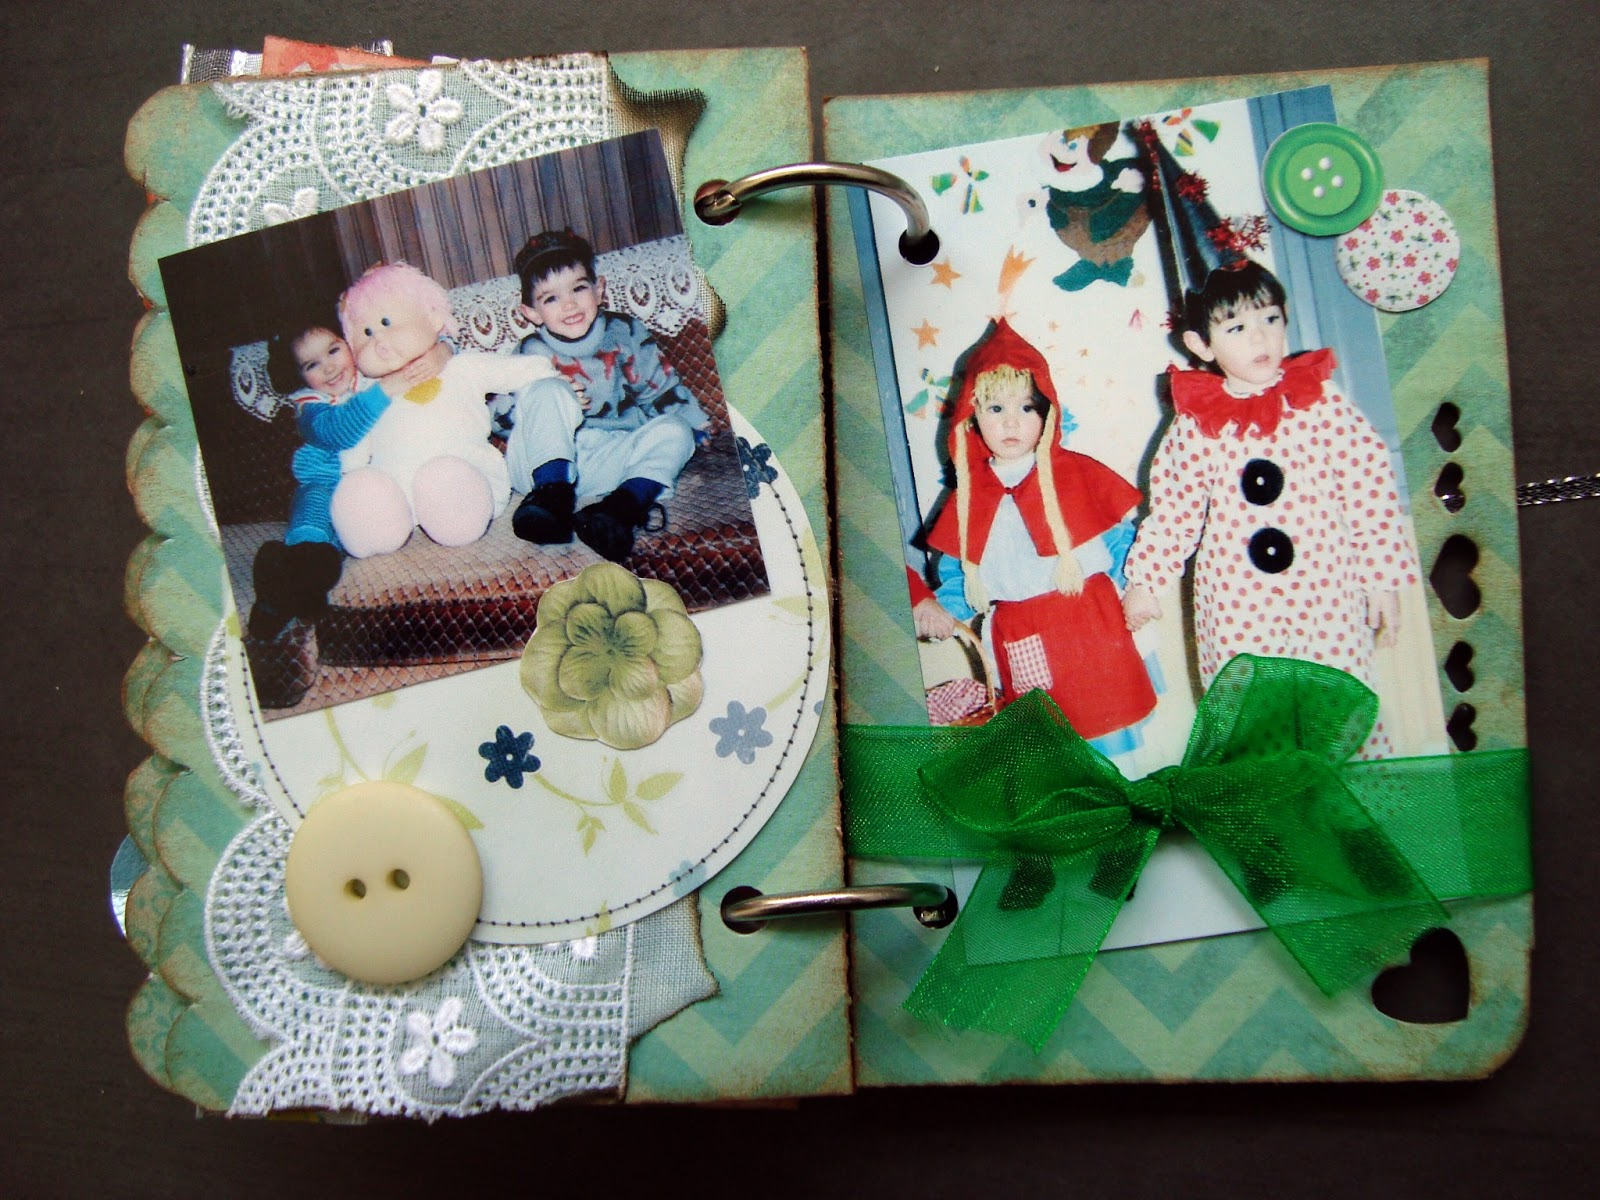 Mini_album_scrapbook_10